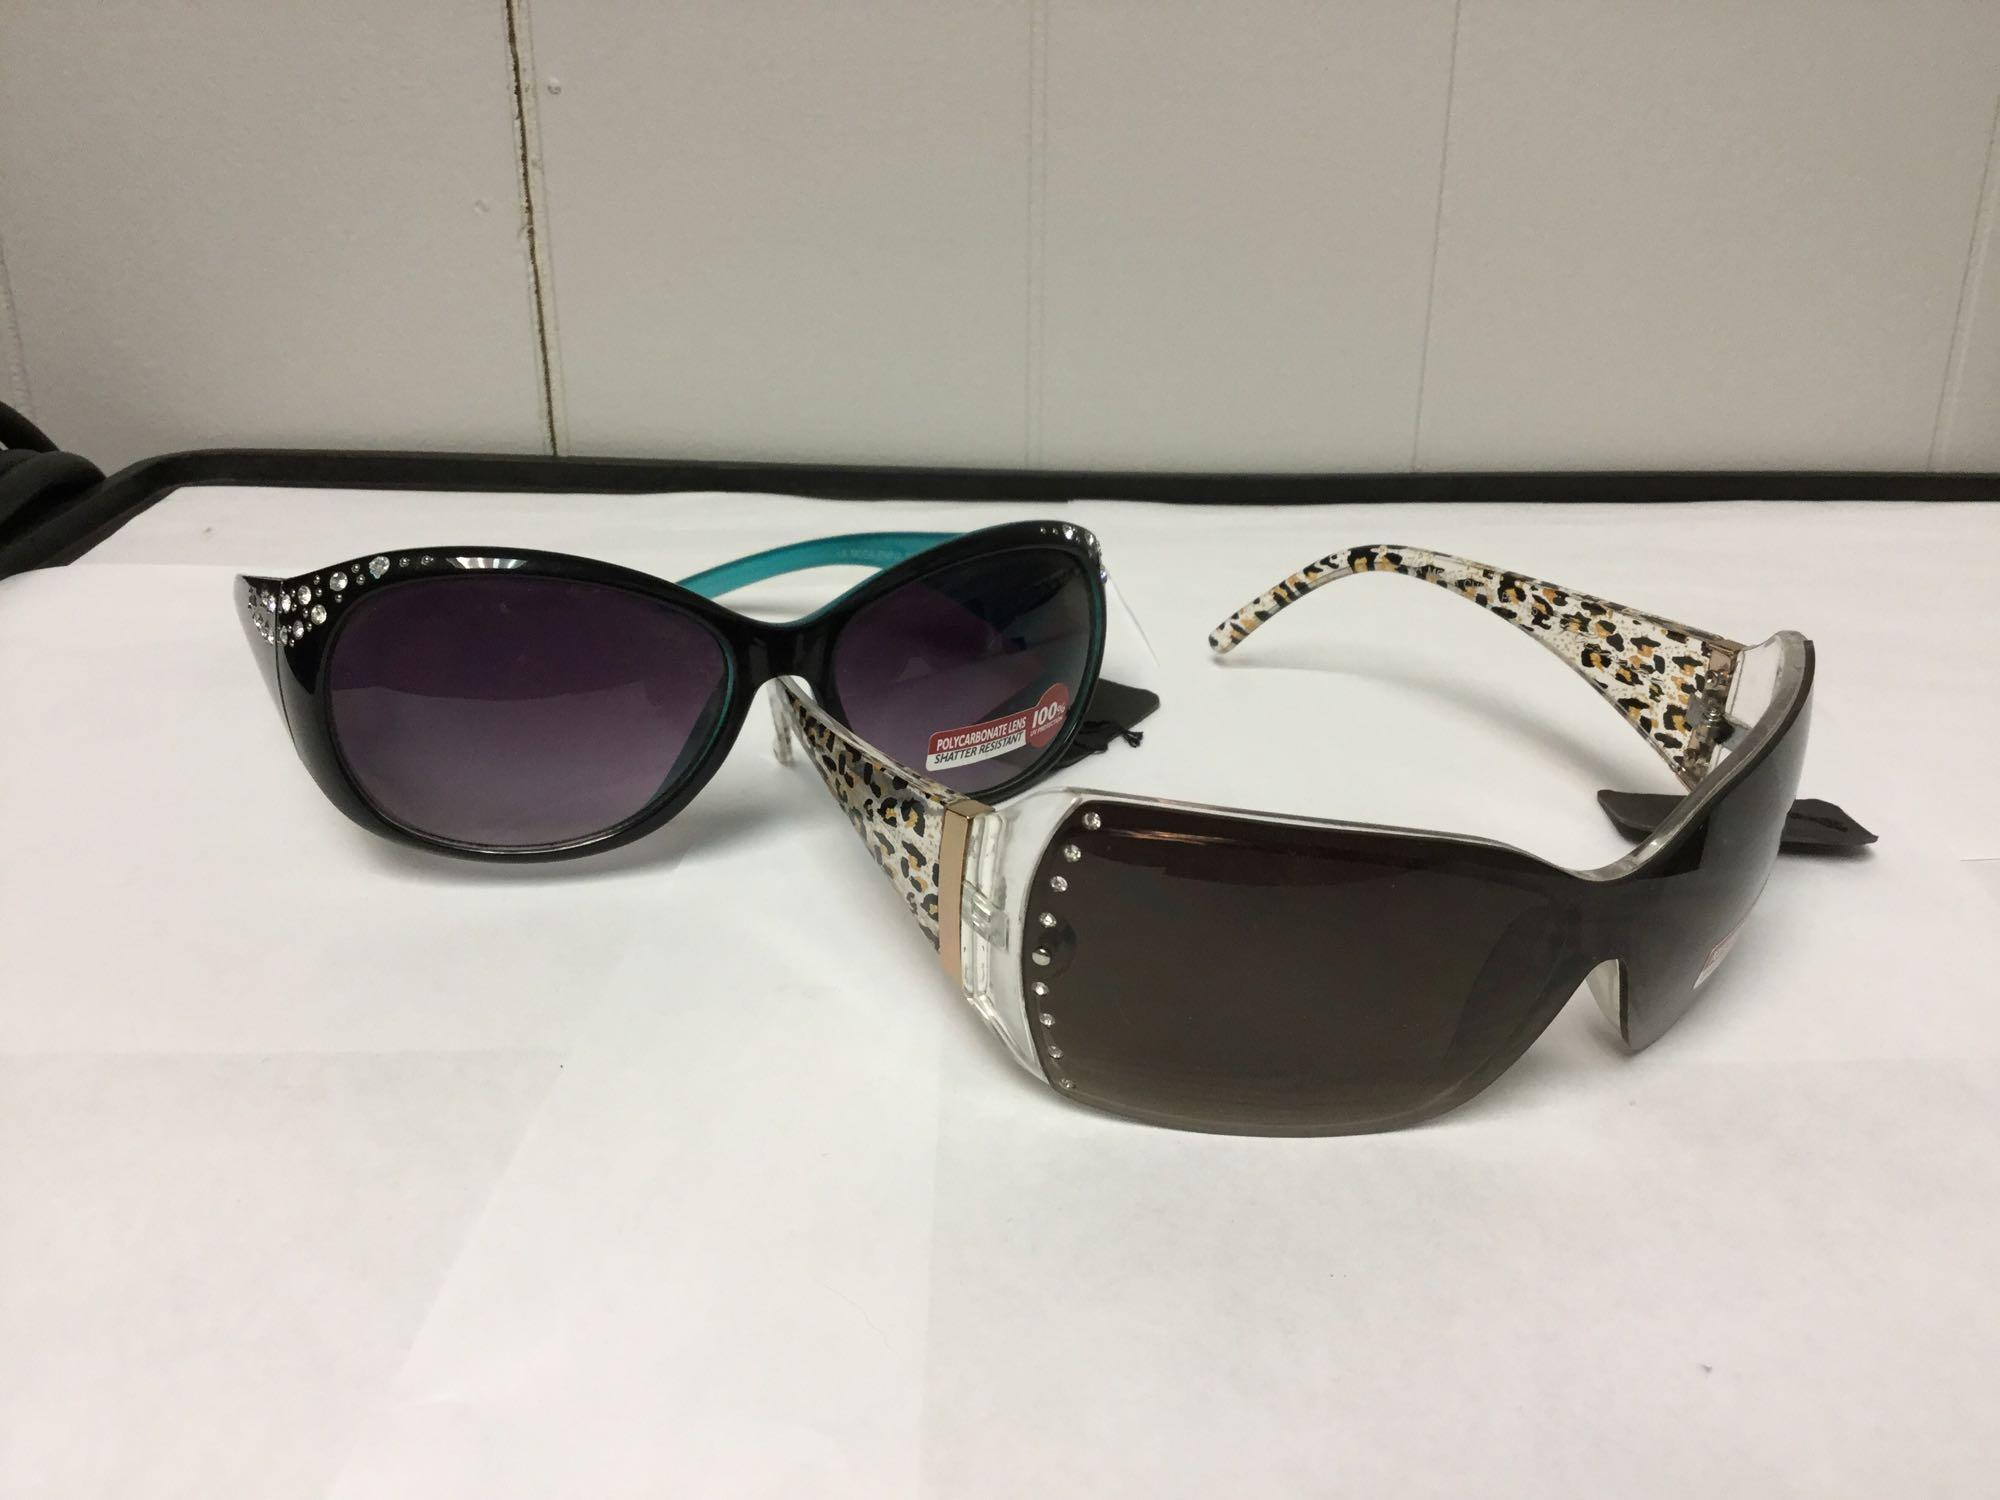 Lot 16 - Lot of 2 Women's Fashion Sunglasses